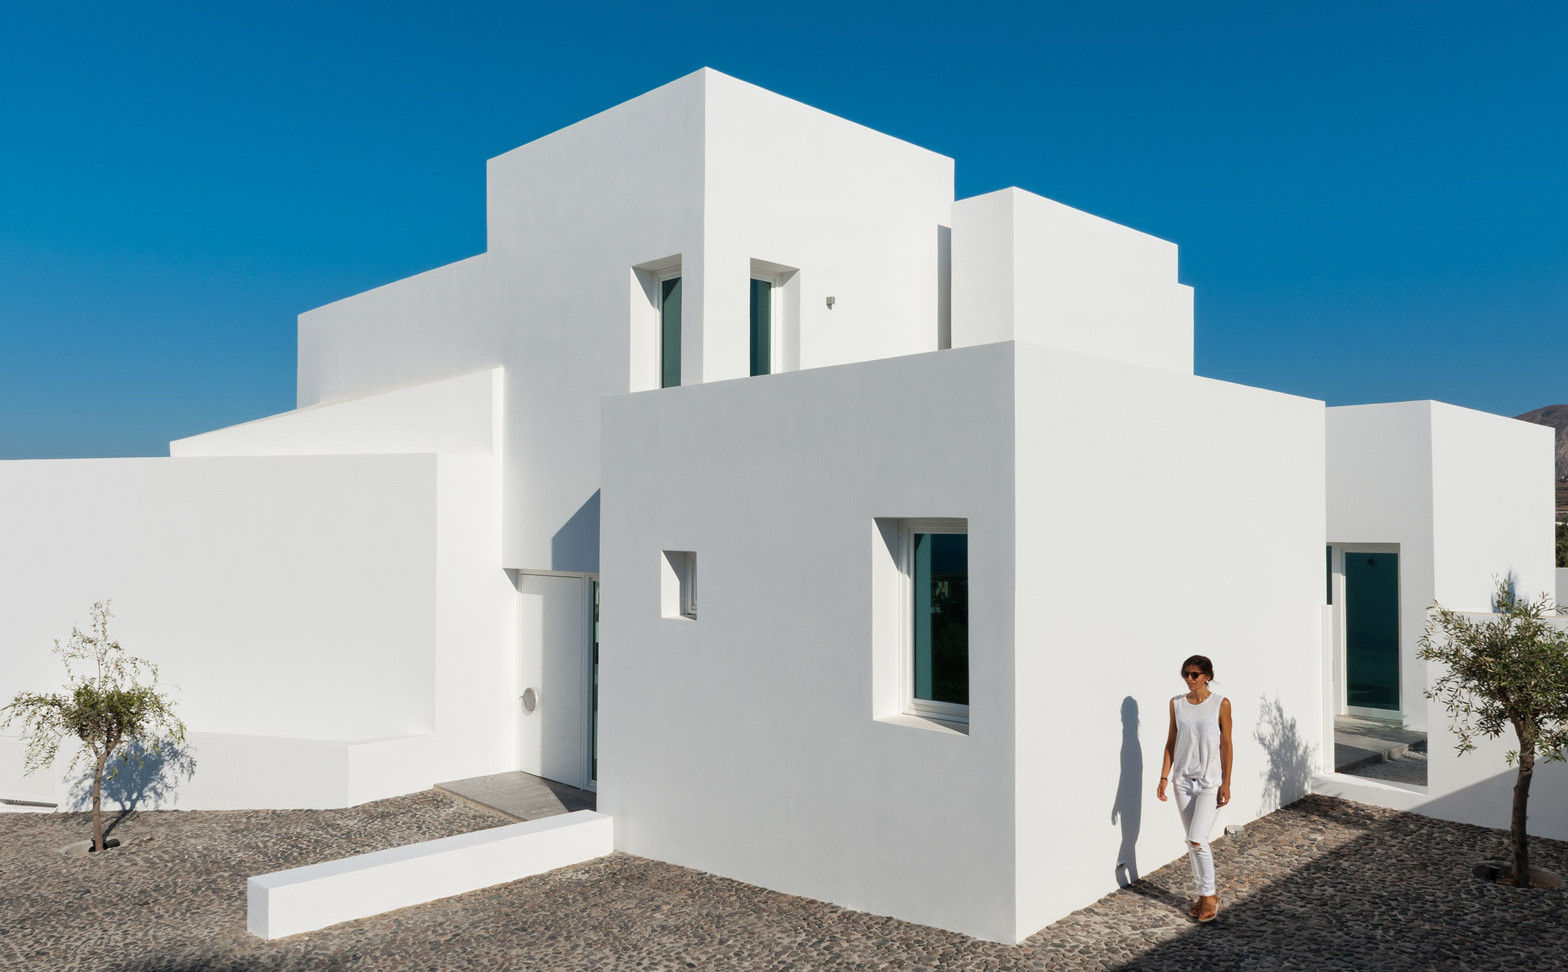 Summer-House-in-Santorini_Kapsimalis-Architects_dezeen_1568_5